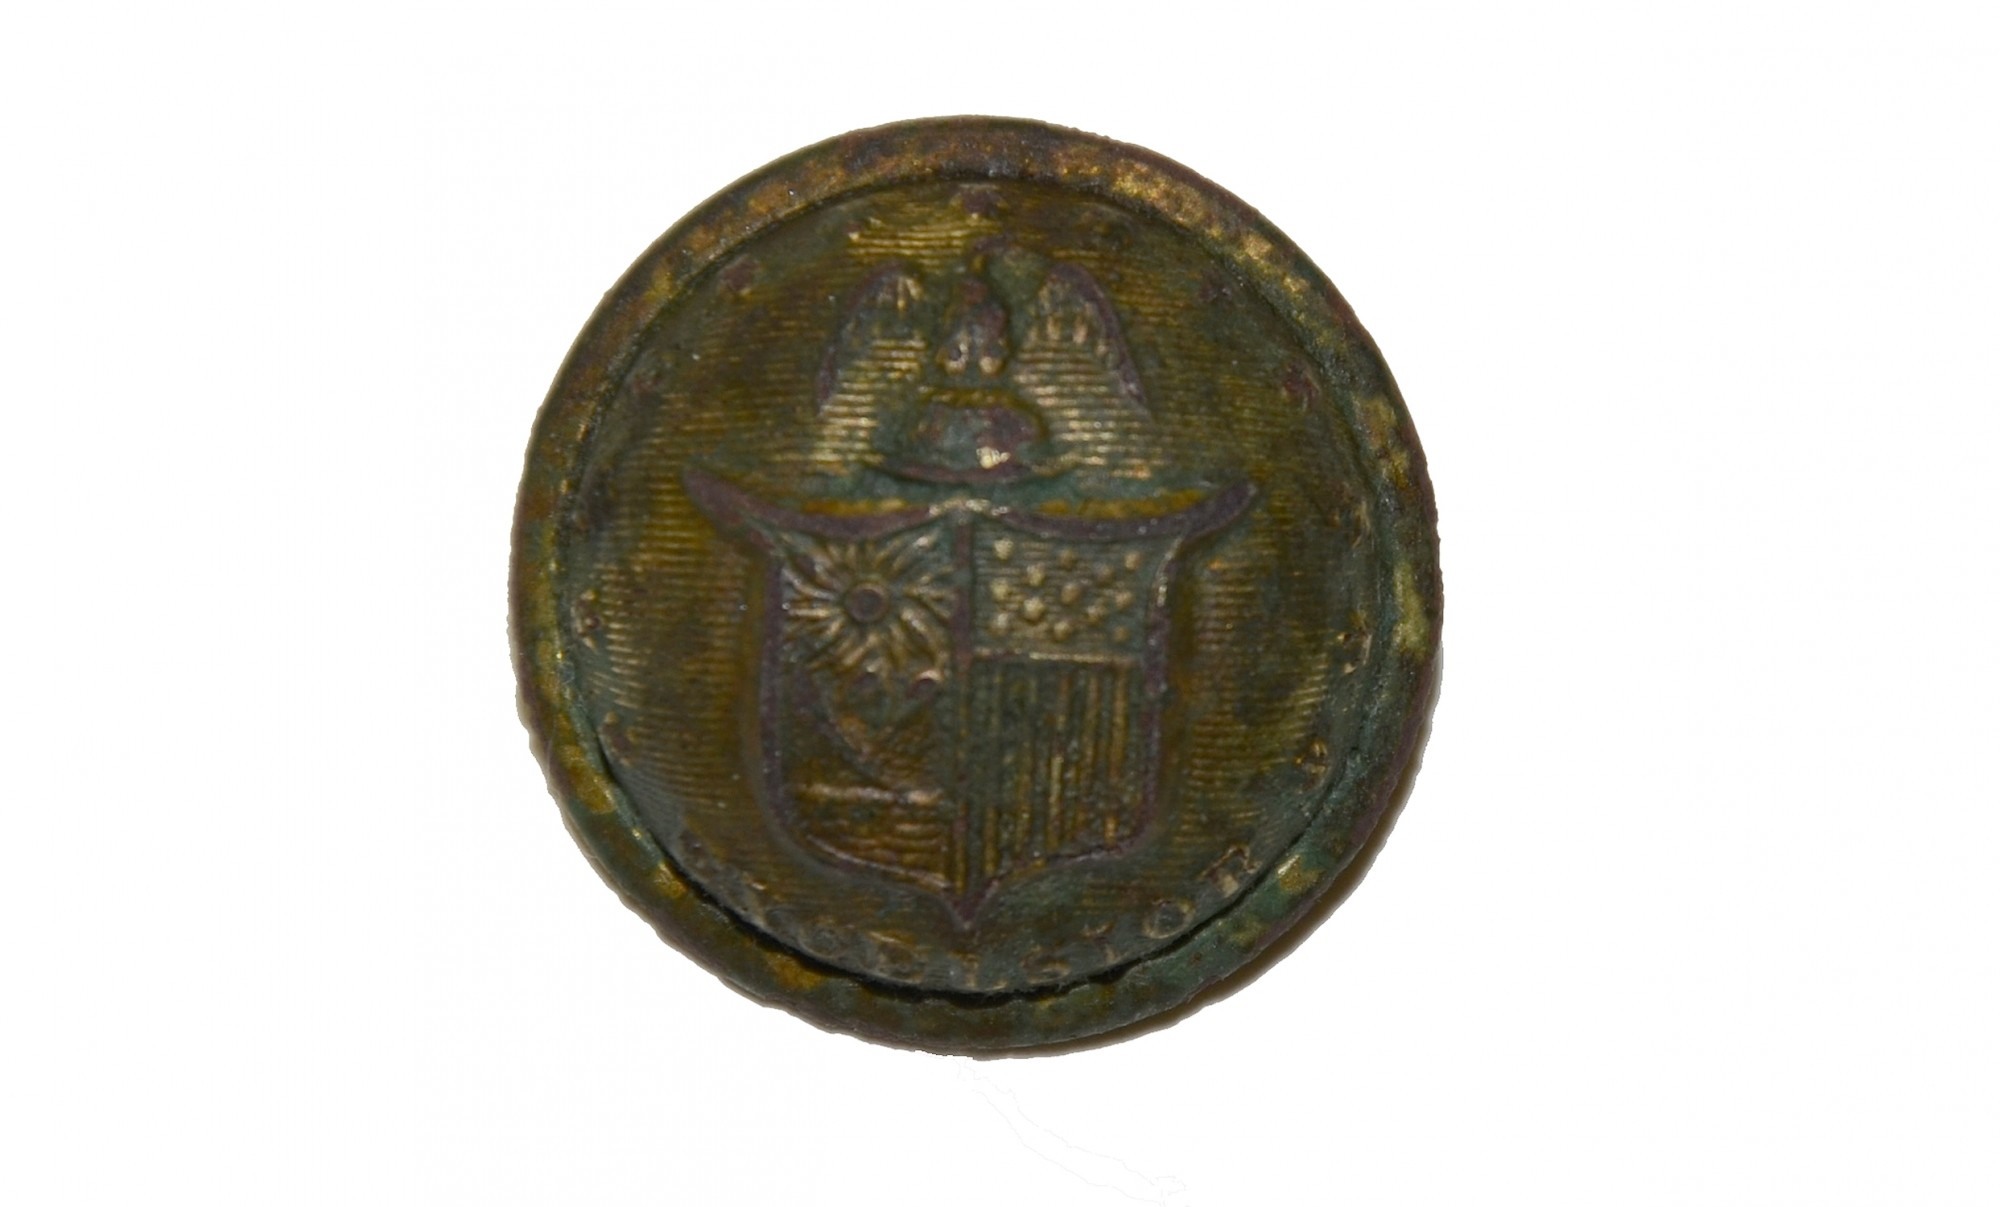 NEW YORK STATE JACKET BUTTON FOUND AT THE 2ND CORPS HOSPITAL SITE AT GETTYSBURG